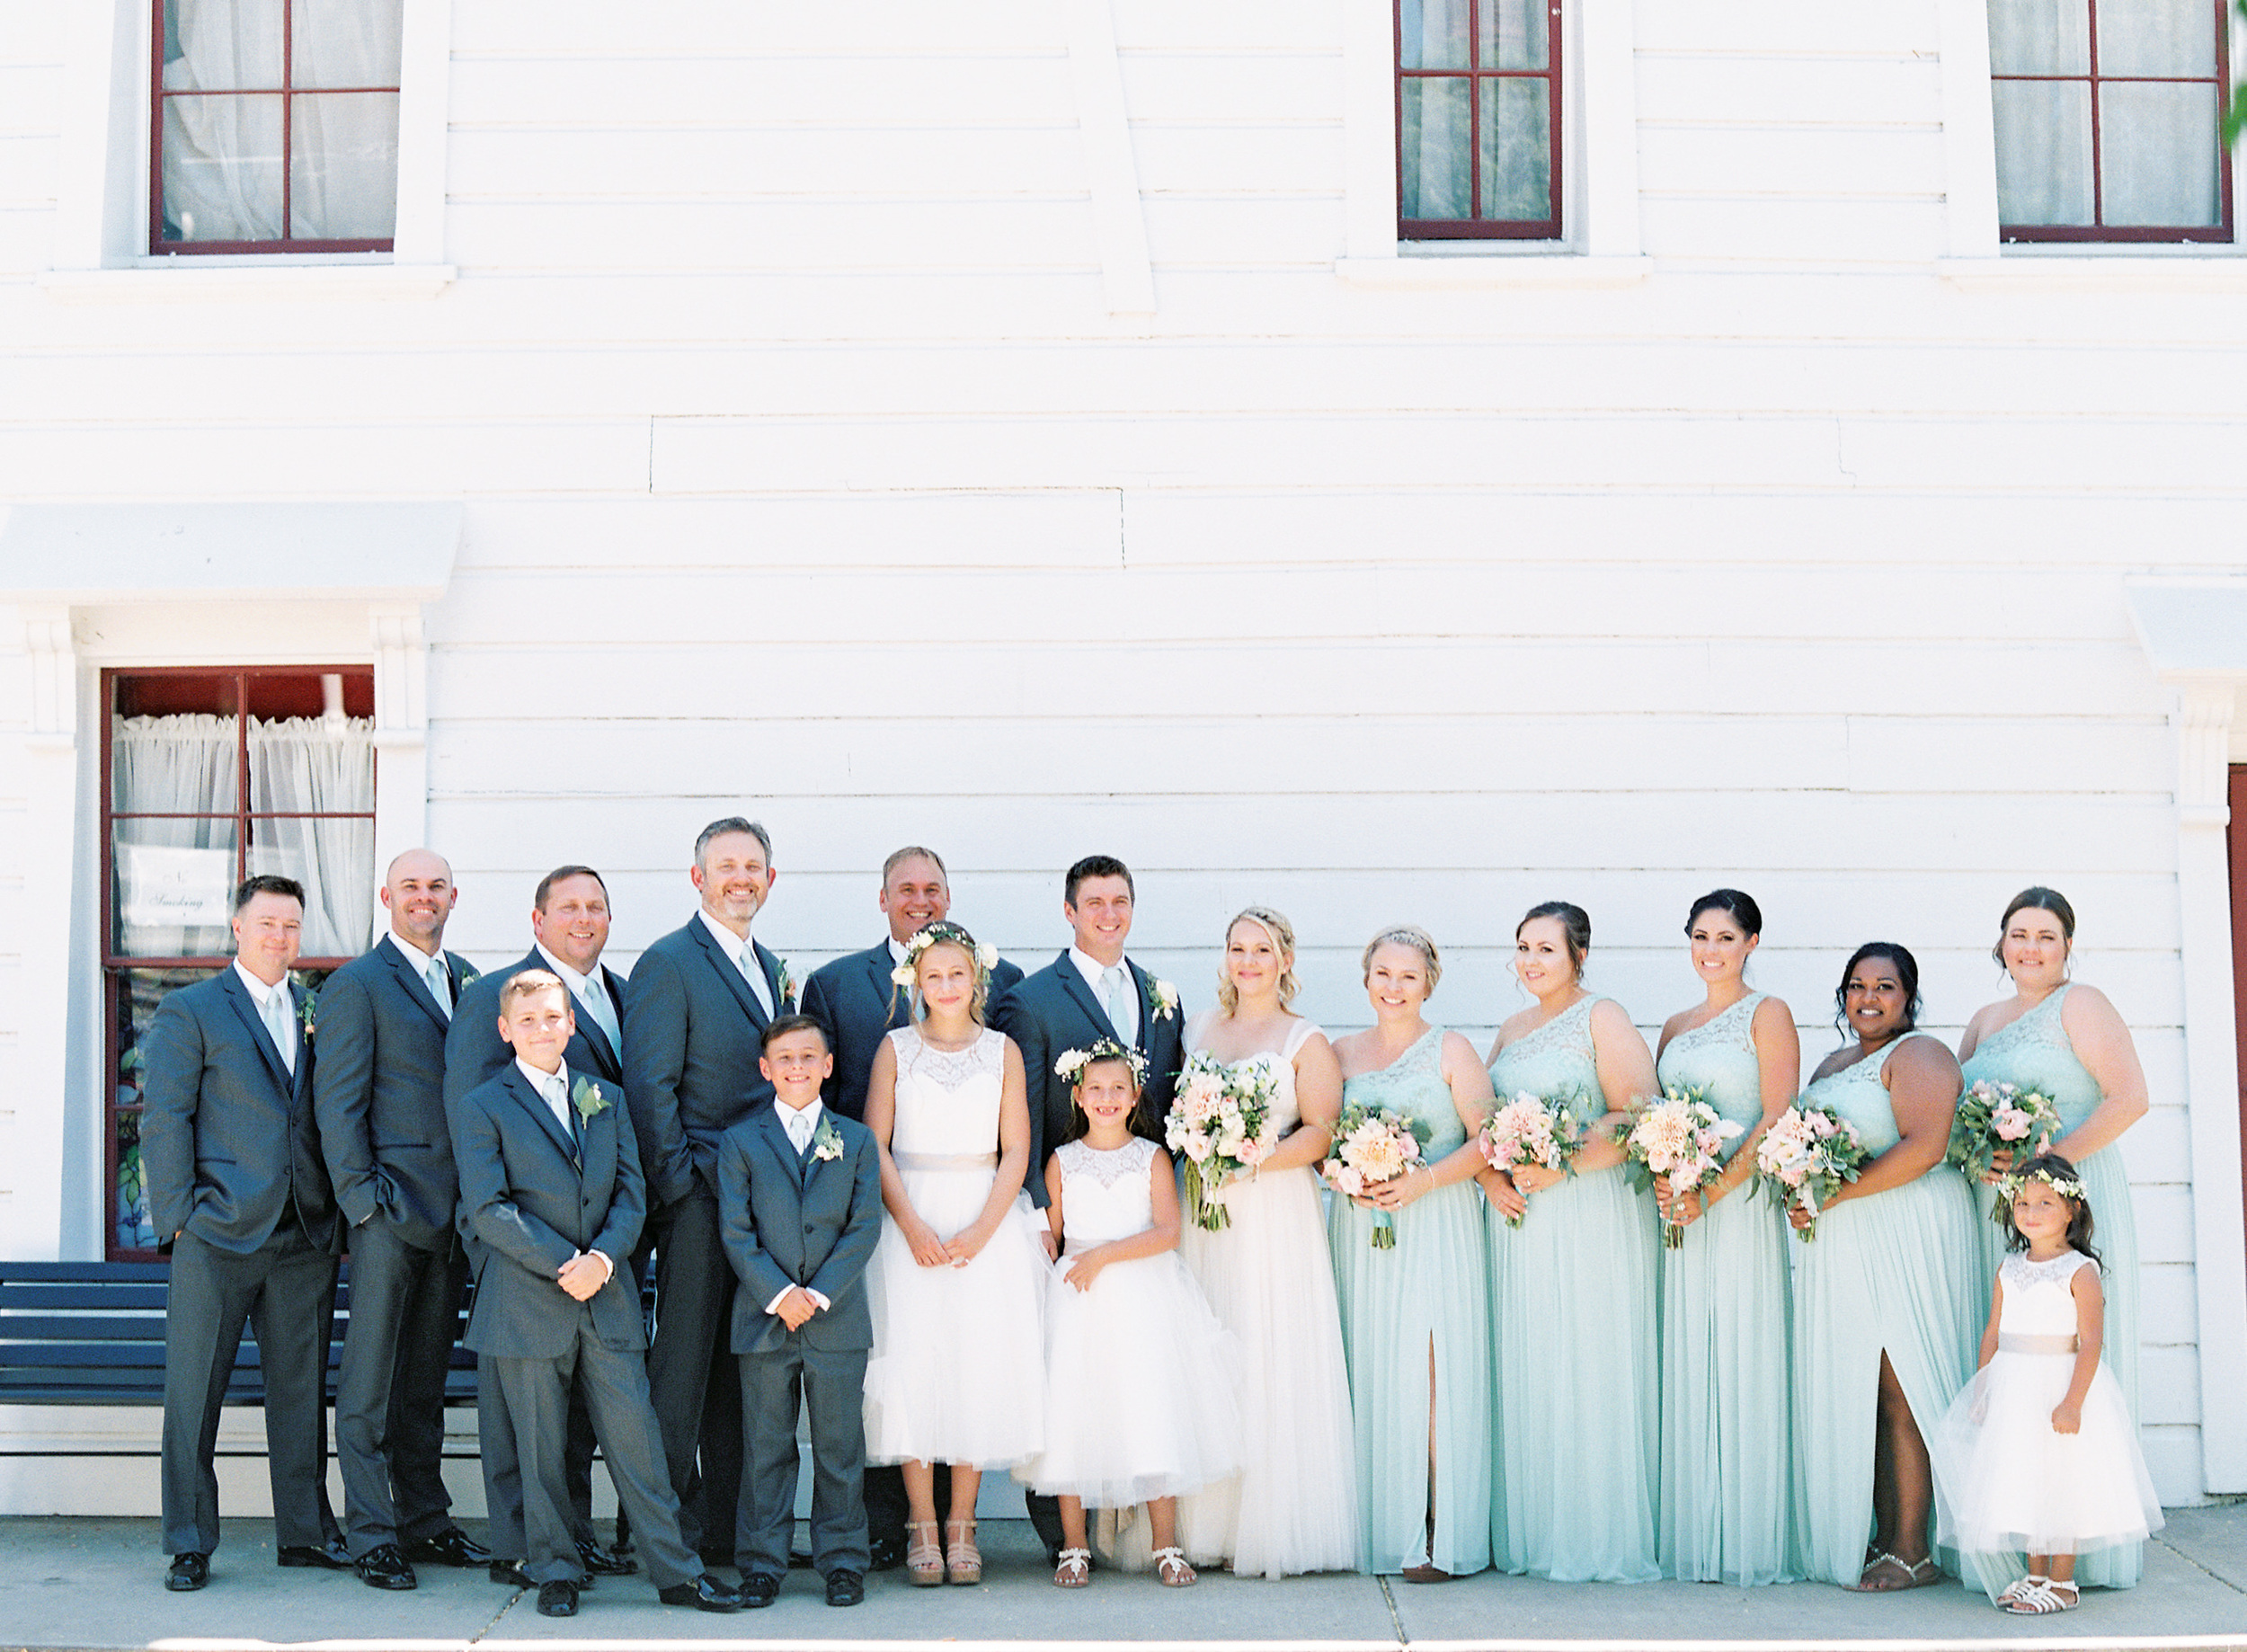 southern-inspired-wedding-at-ravenswood-historic-site-016-6.jpg